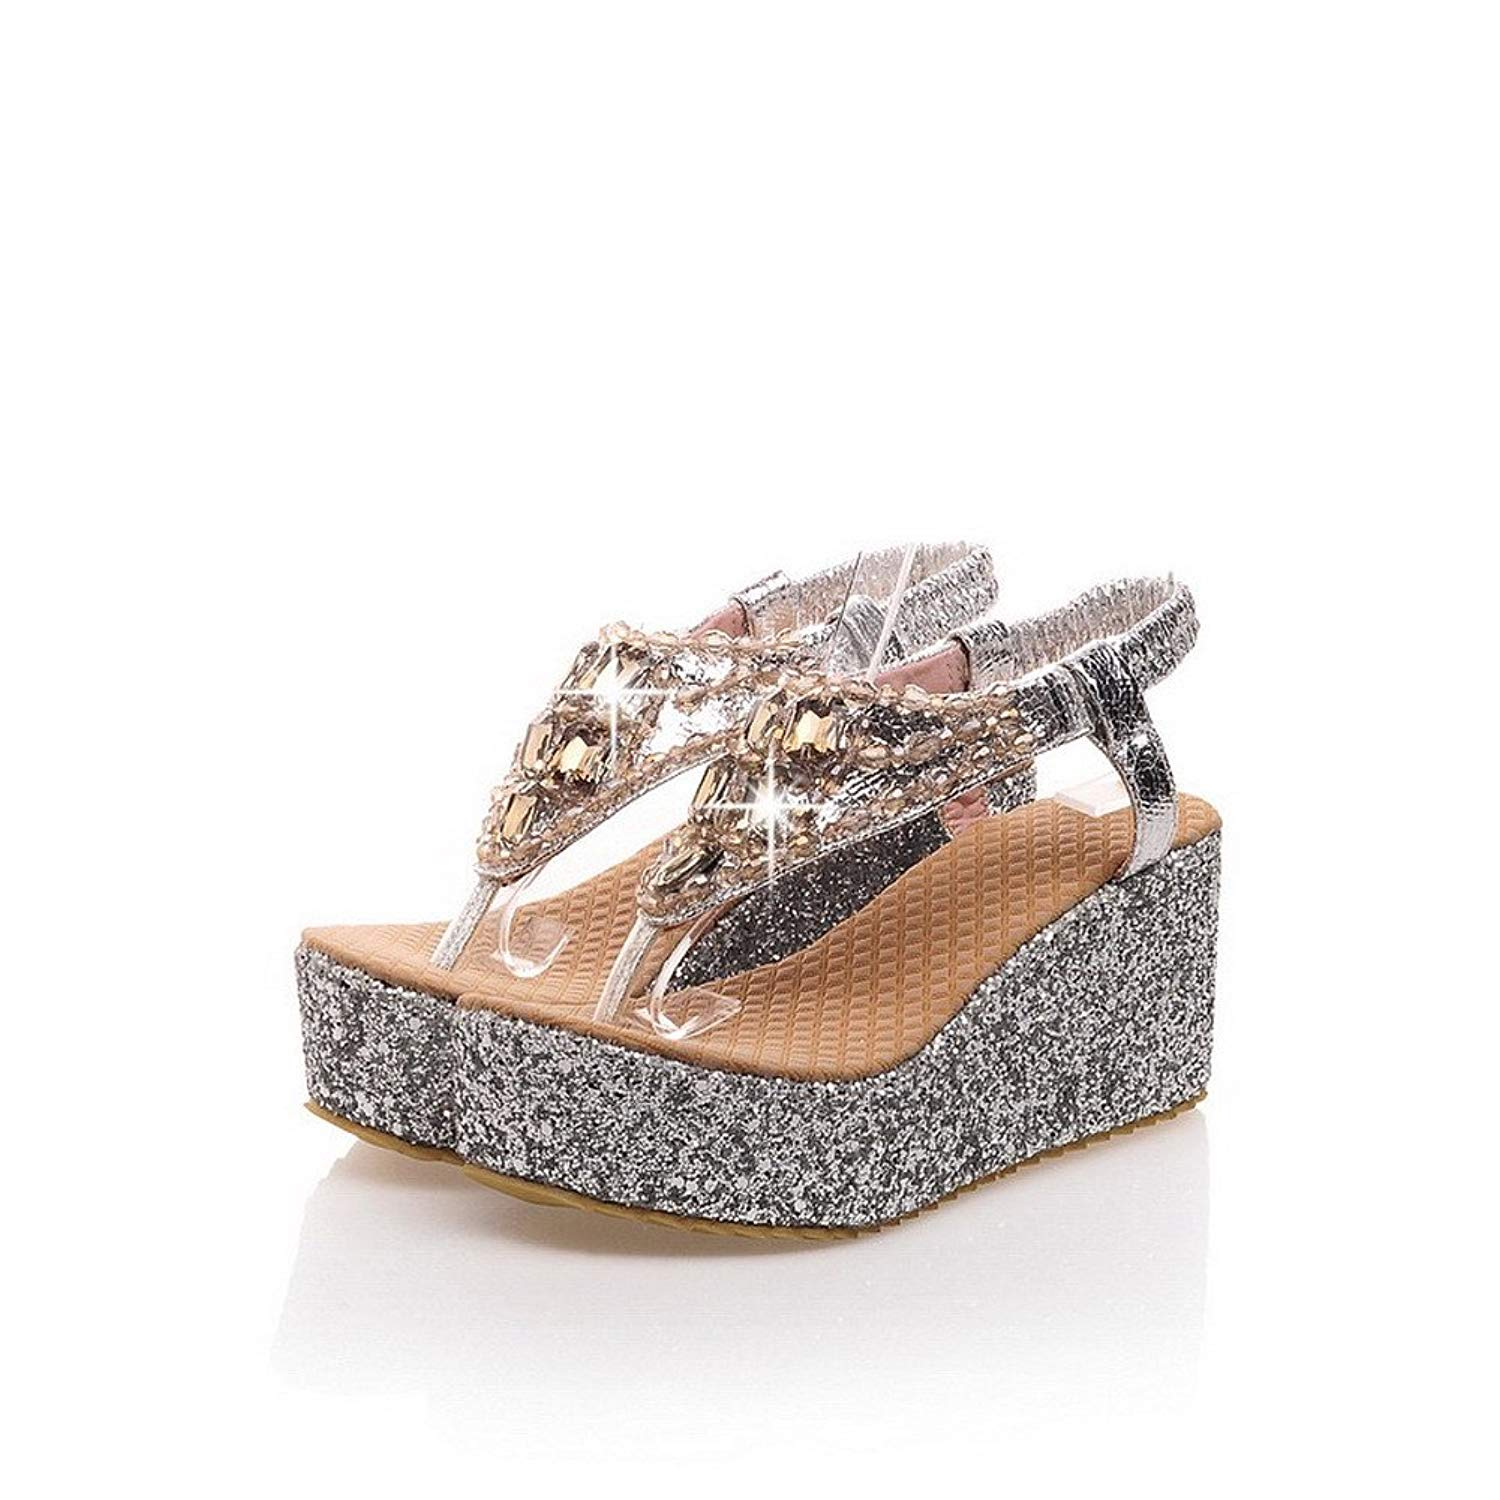 e615472a37d1c9 Get Quotations · WeenFashion Womans Thong Open Toe Kitten Heels Wedge PU  Soft Material Solid Sandals with Glass Diamond